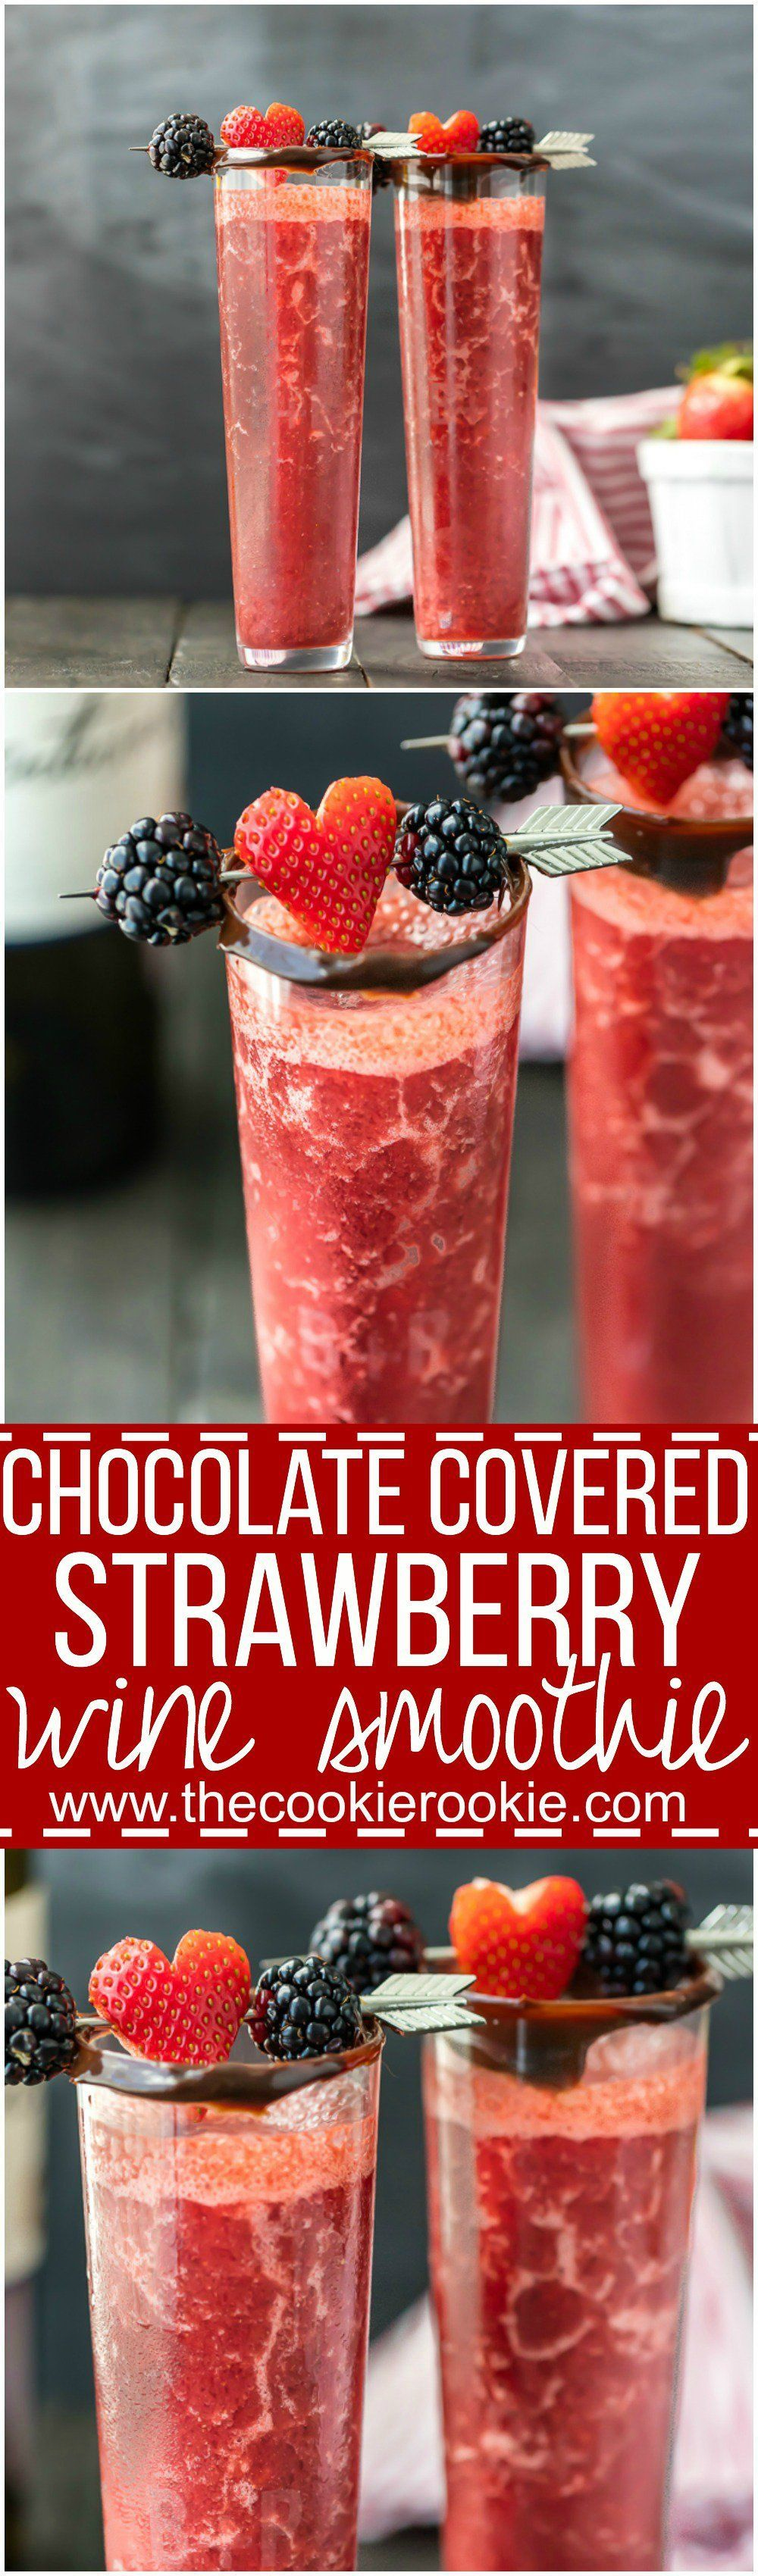 This Chocolate Covered Strawberry Wine Smoothie Only Has Three Ingredients So Tasty Easy And Refreshing The Be Wine Smoothie Chocolate Wine Strawberry Wine